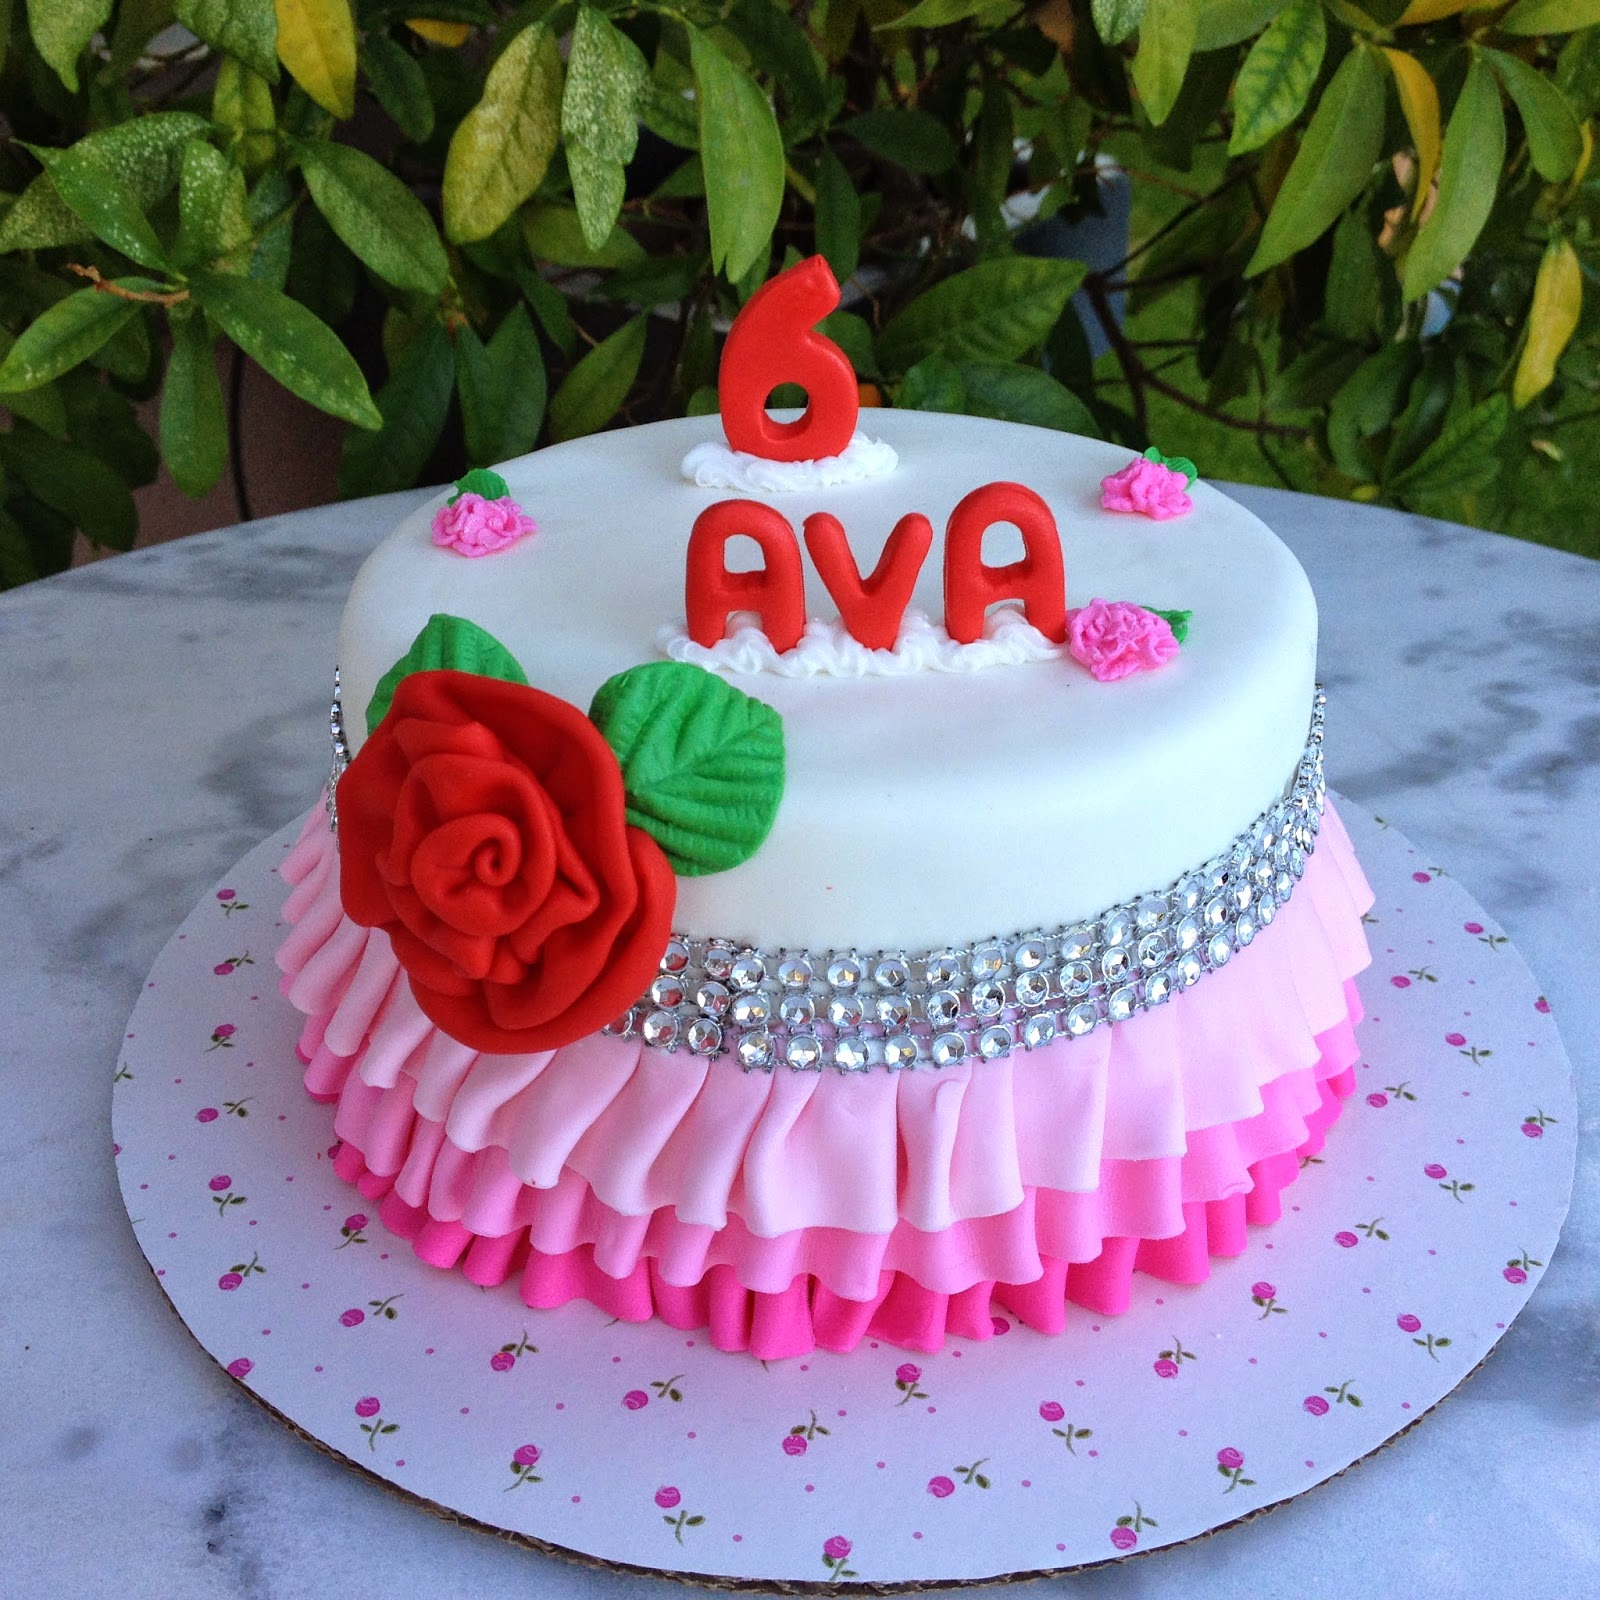 Ava's Cakes and Events - Laoag City | Facebook